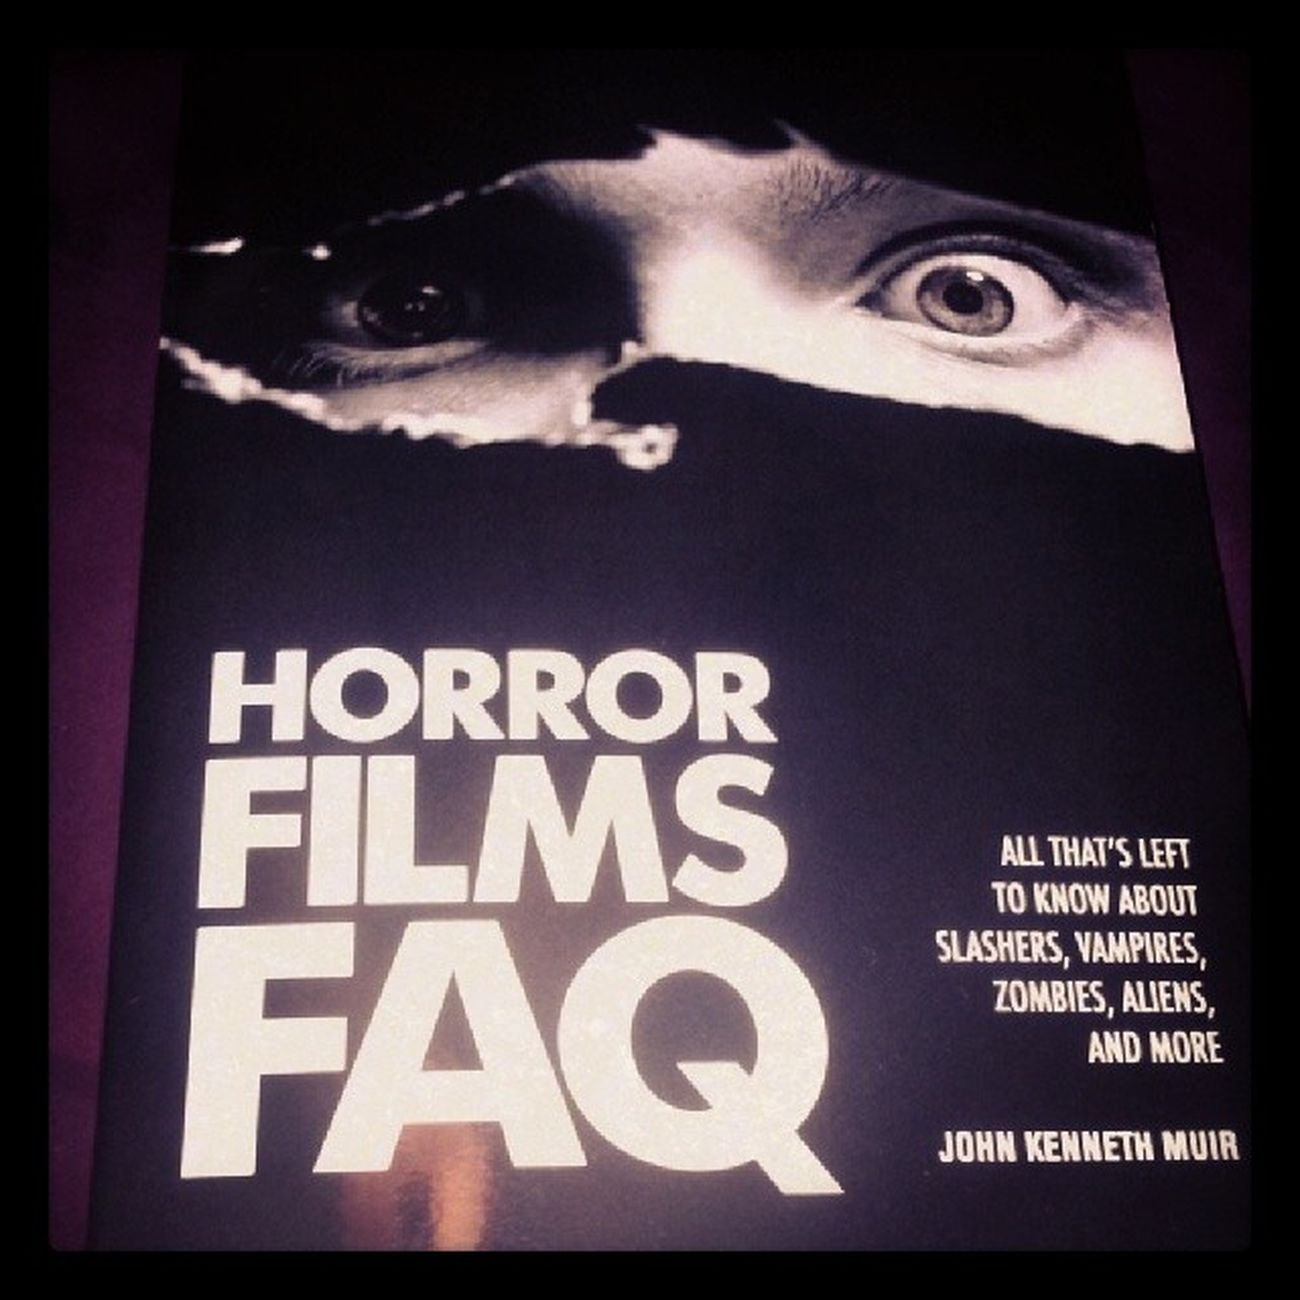 Pretty stoked on this. Not just another book giving synopses of movies. Horrorhound Gorehound Mypassion Cultflicks